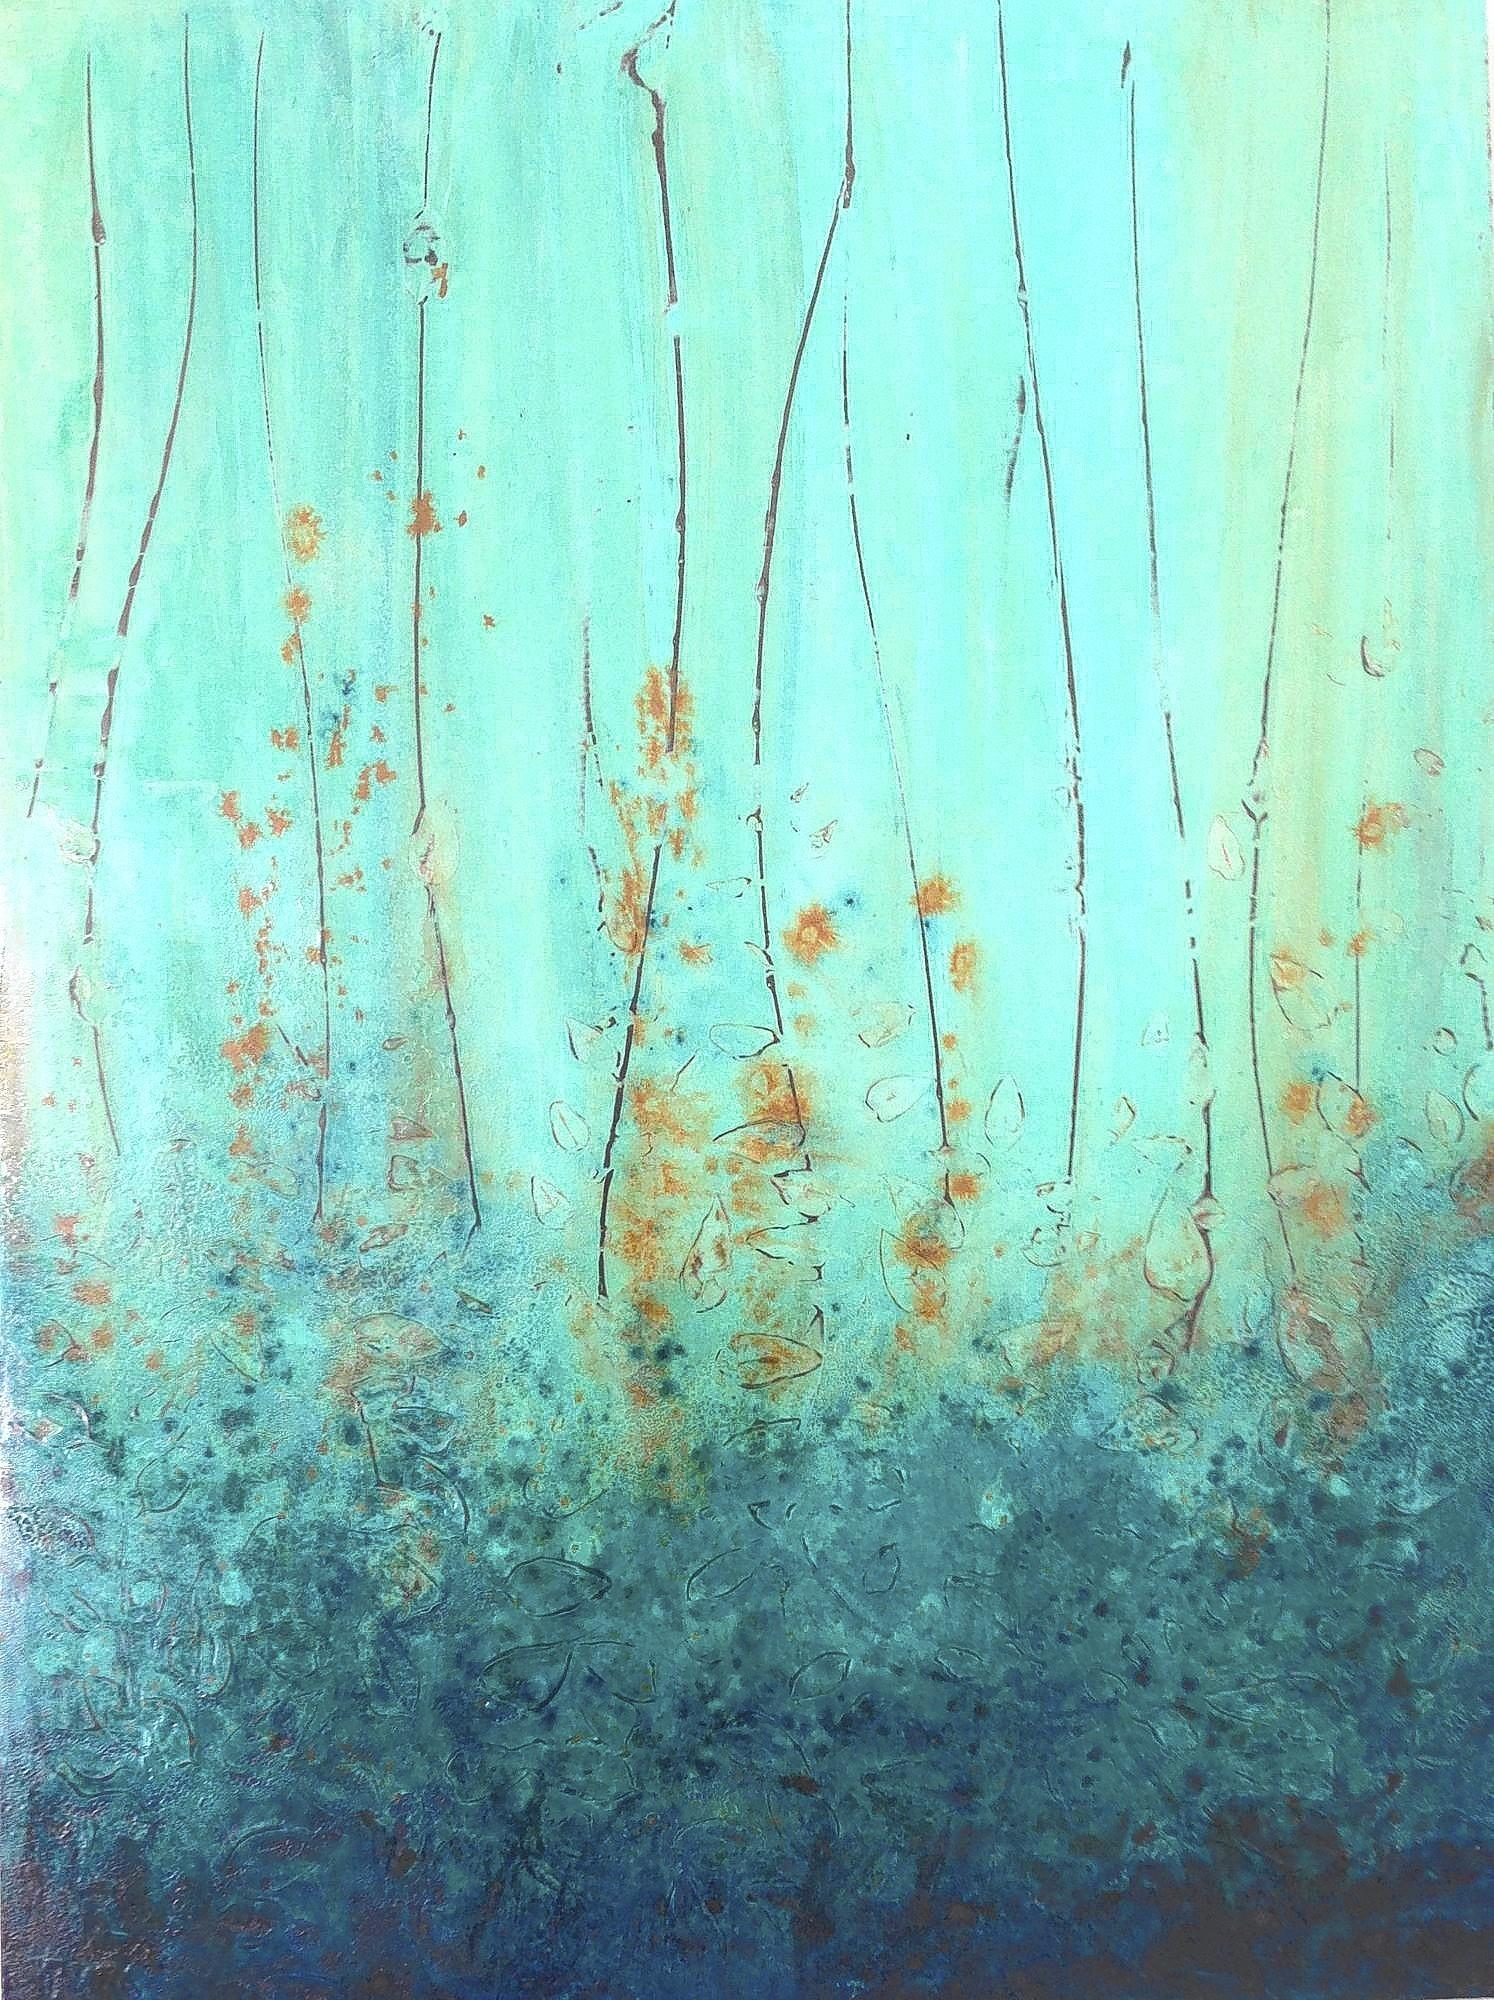 Avran Art   Design presents a solo exhibit by artist Stephanie Paige from 6 to 9 p.m. Saturday.